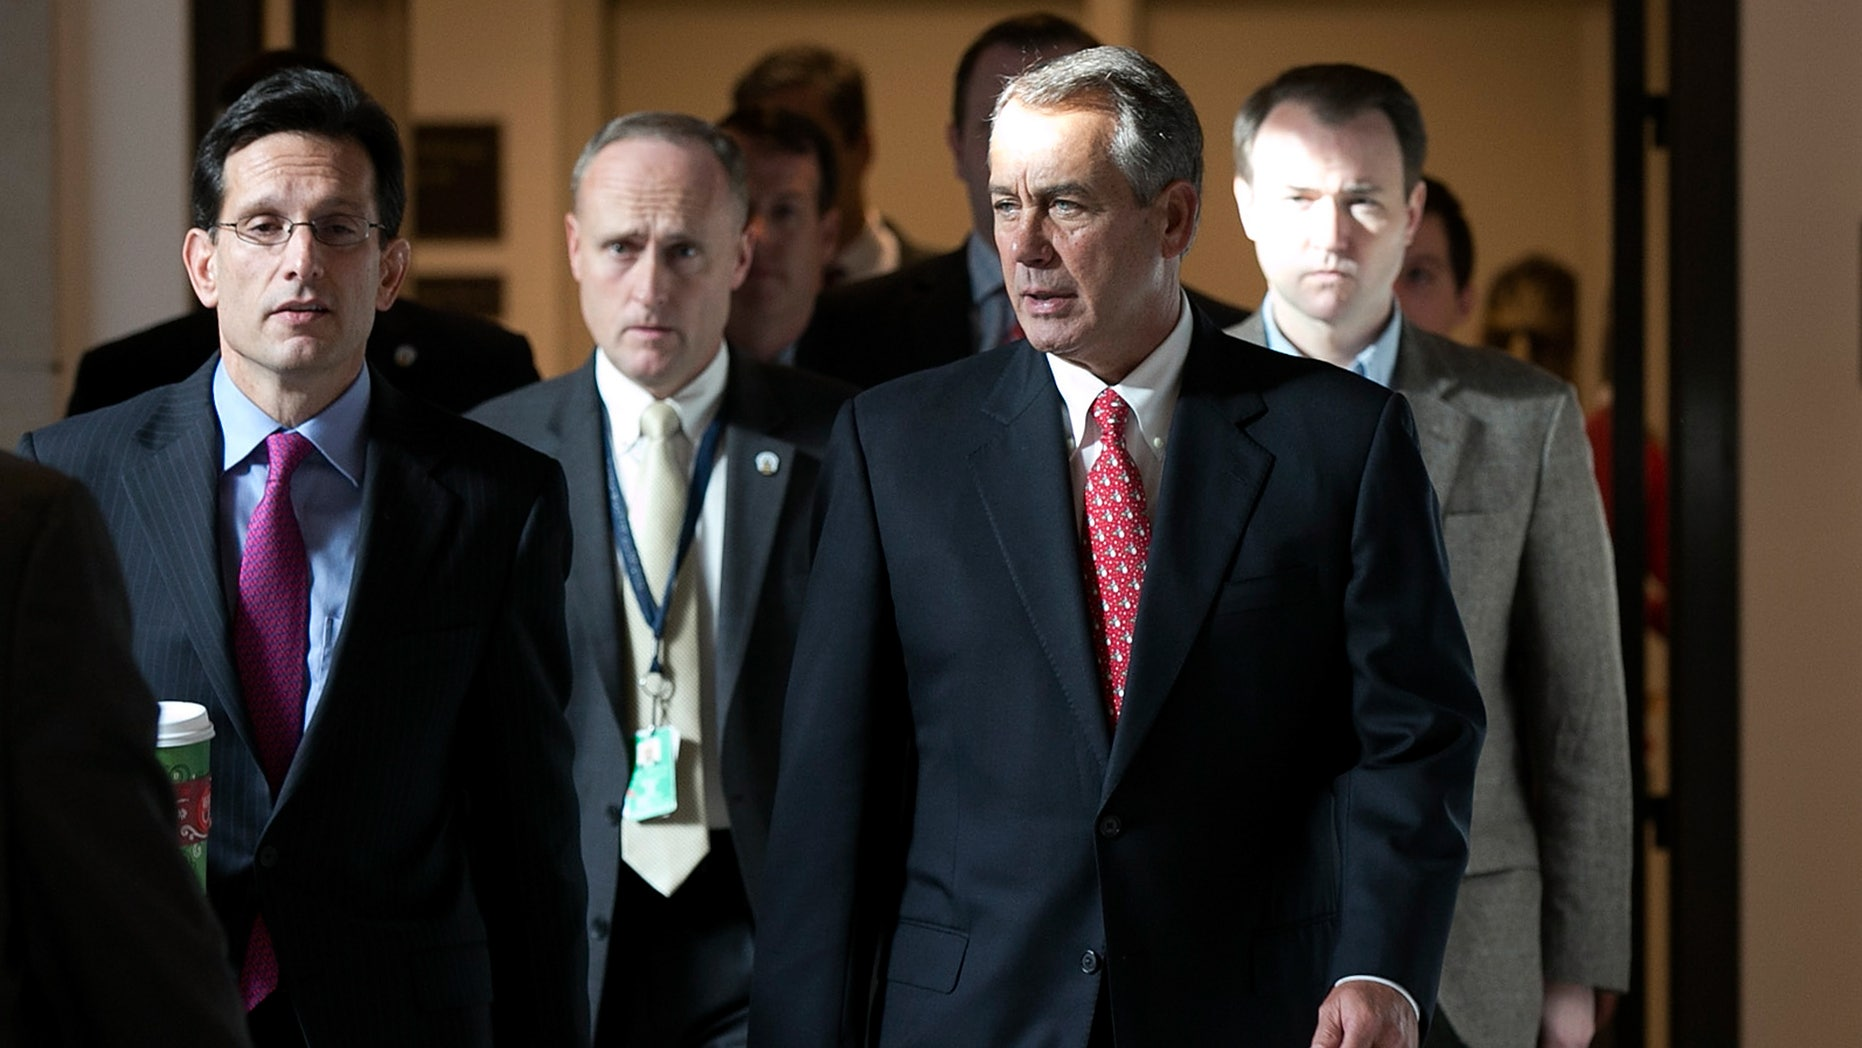 Speaker of the House John Boehner (R-OH) (2nd R) walks to a press conference with House Majority Leader Eric Cantor (R-VA) (L) at the U.S. Capitol December 21, 2012 in Washington, DC. )